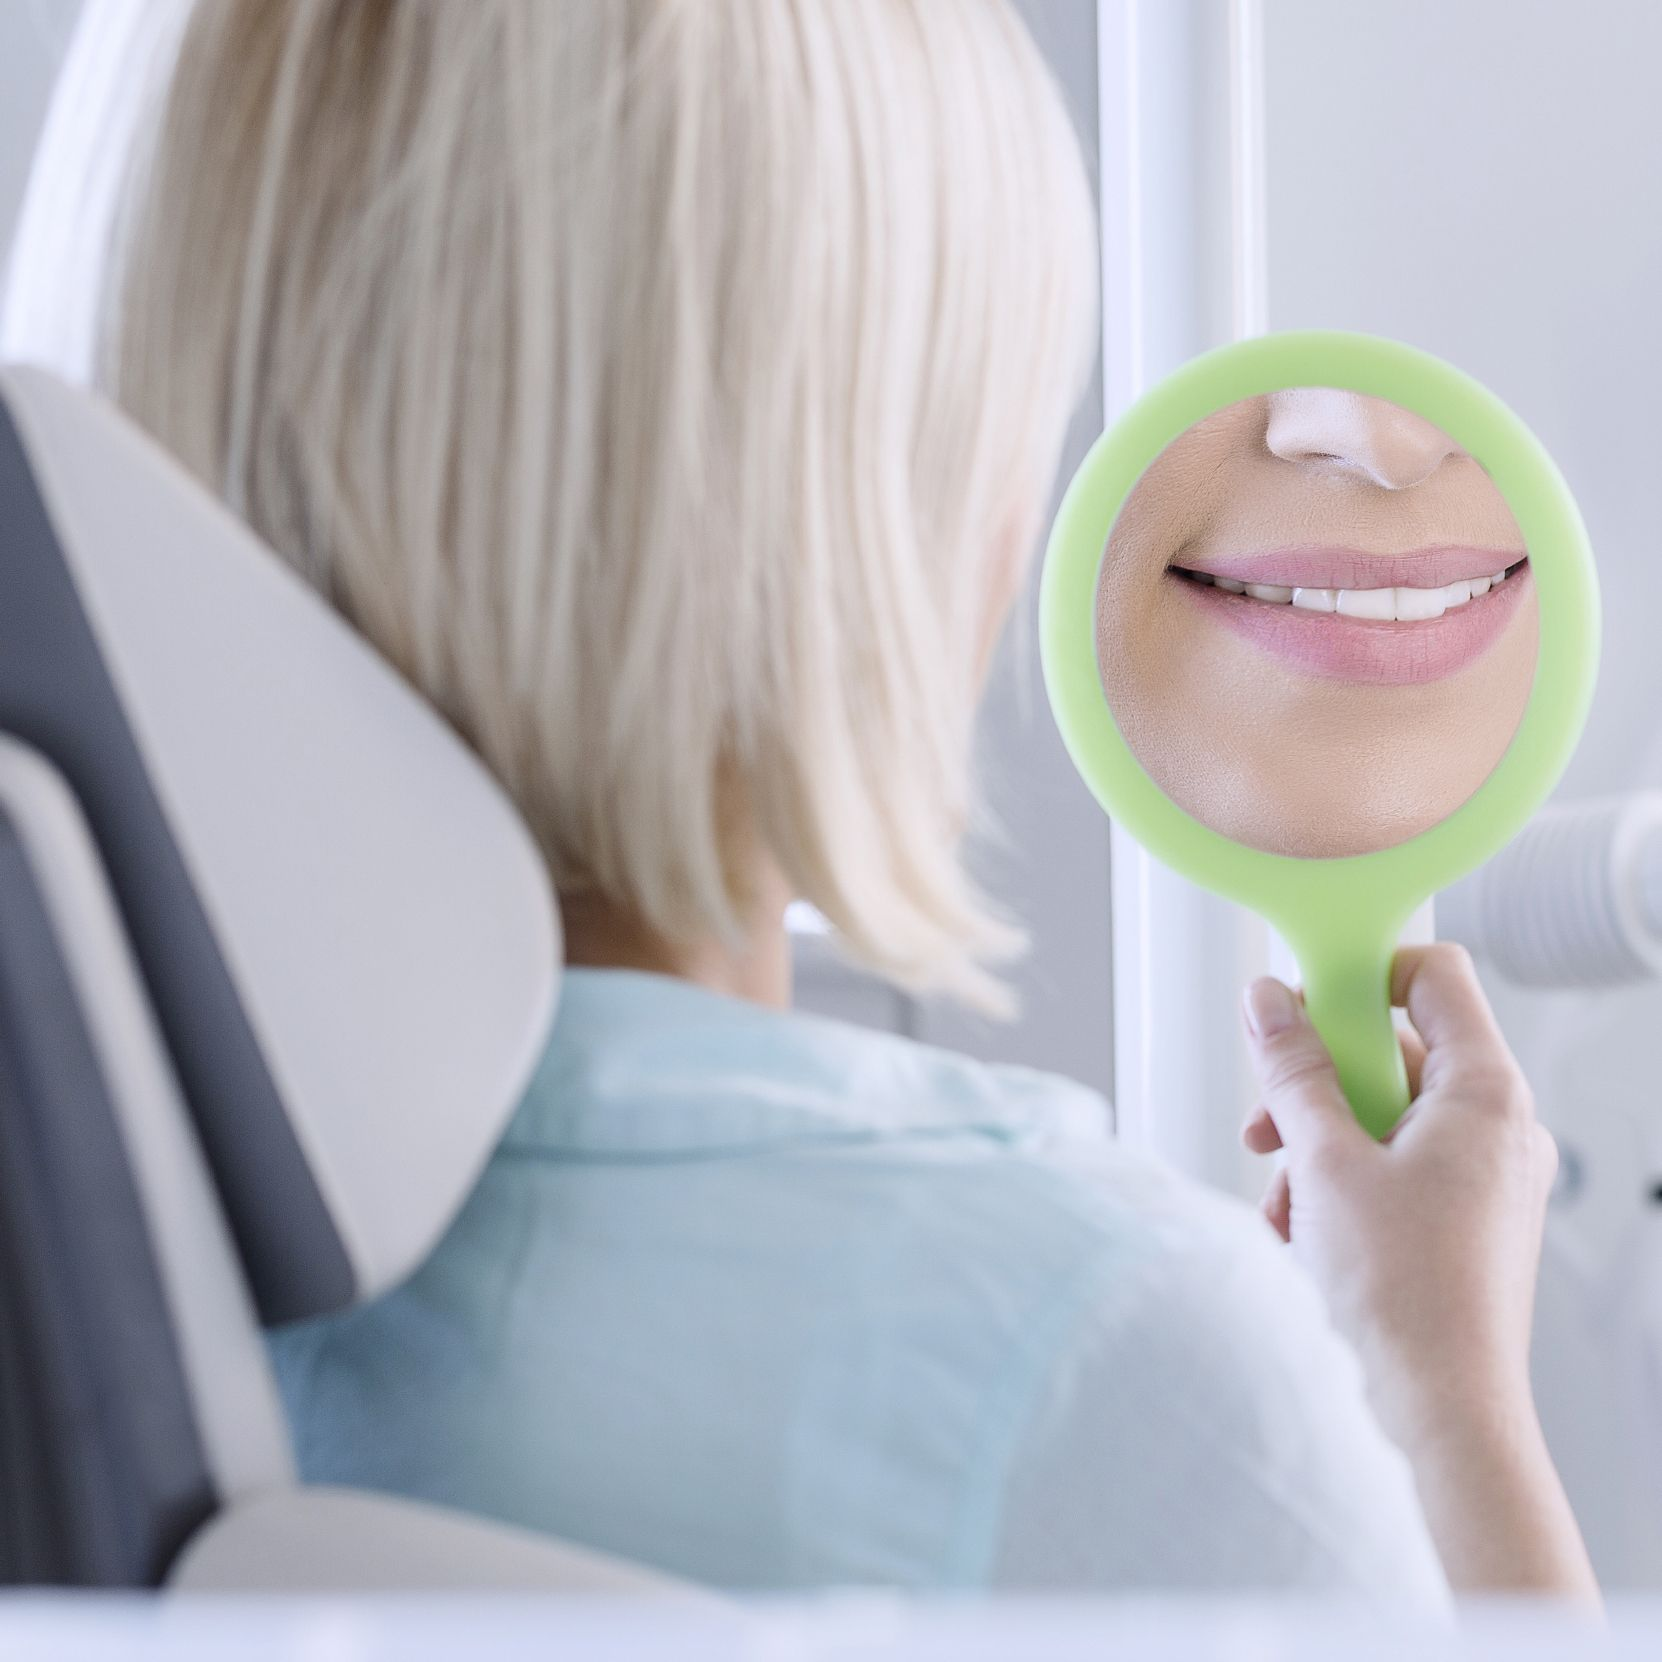 A woman smiling in a mirror, her teeth clean and healthy